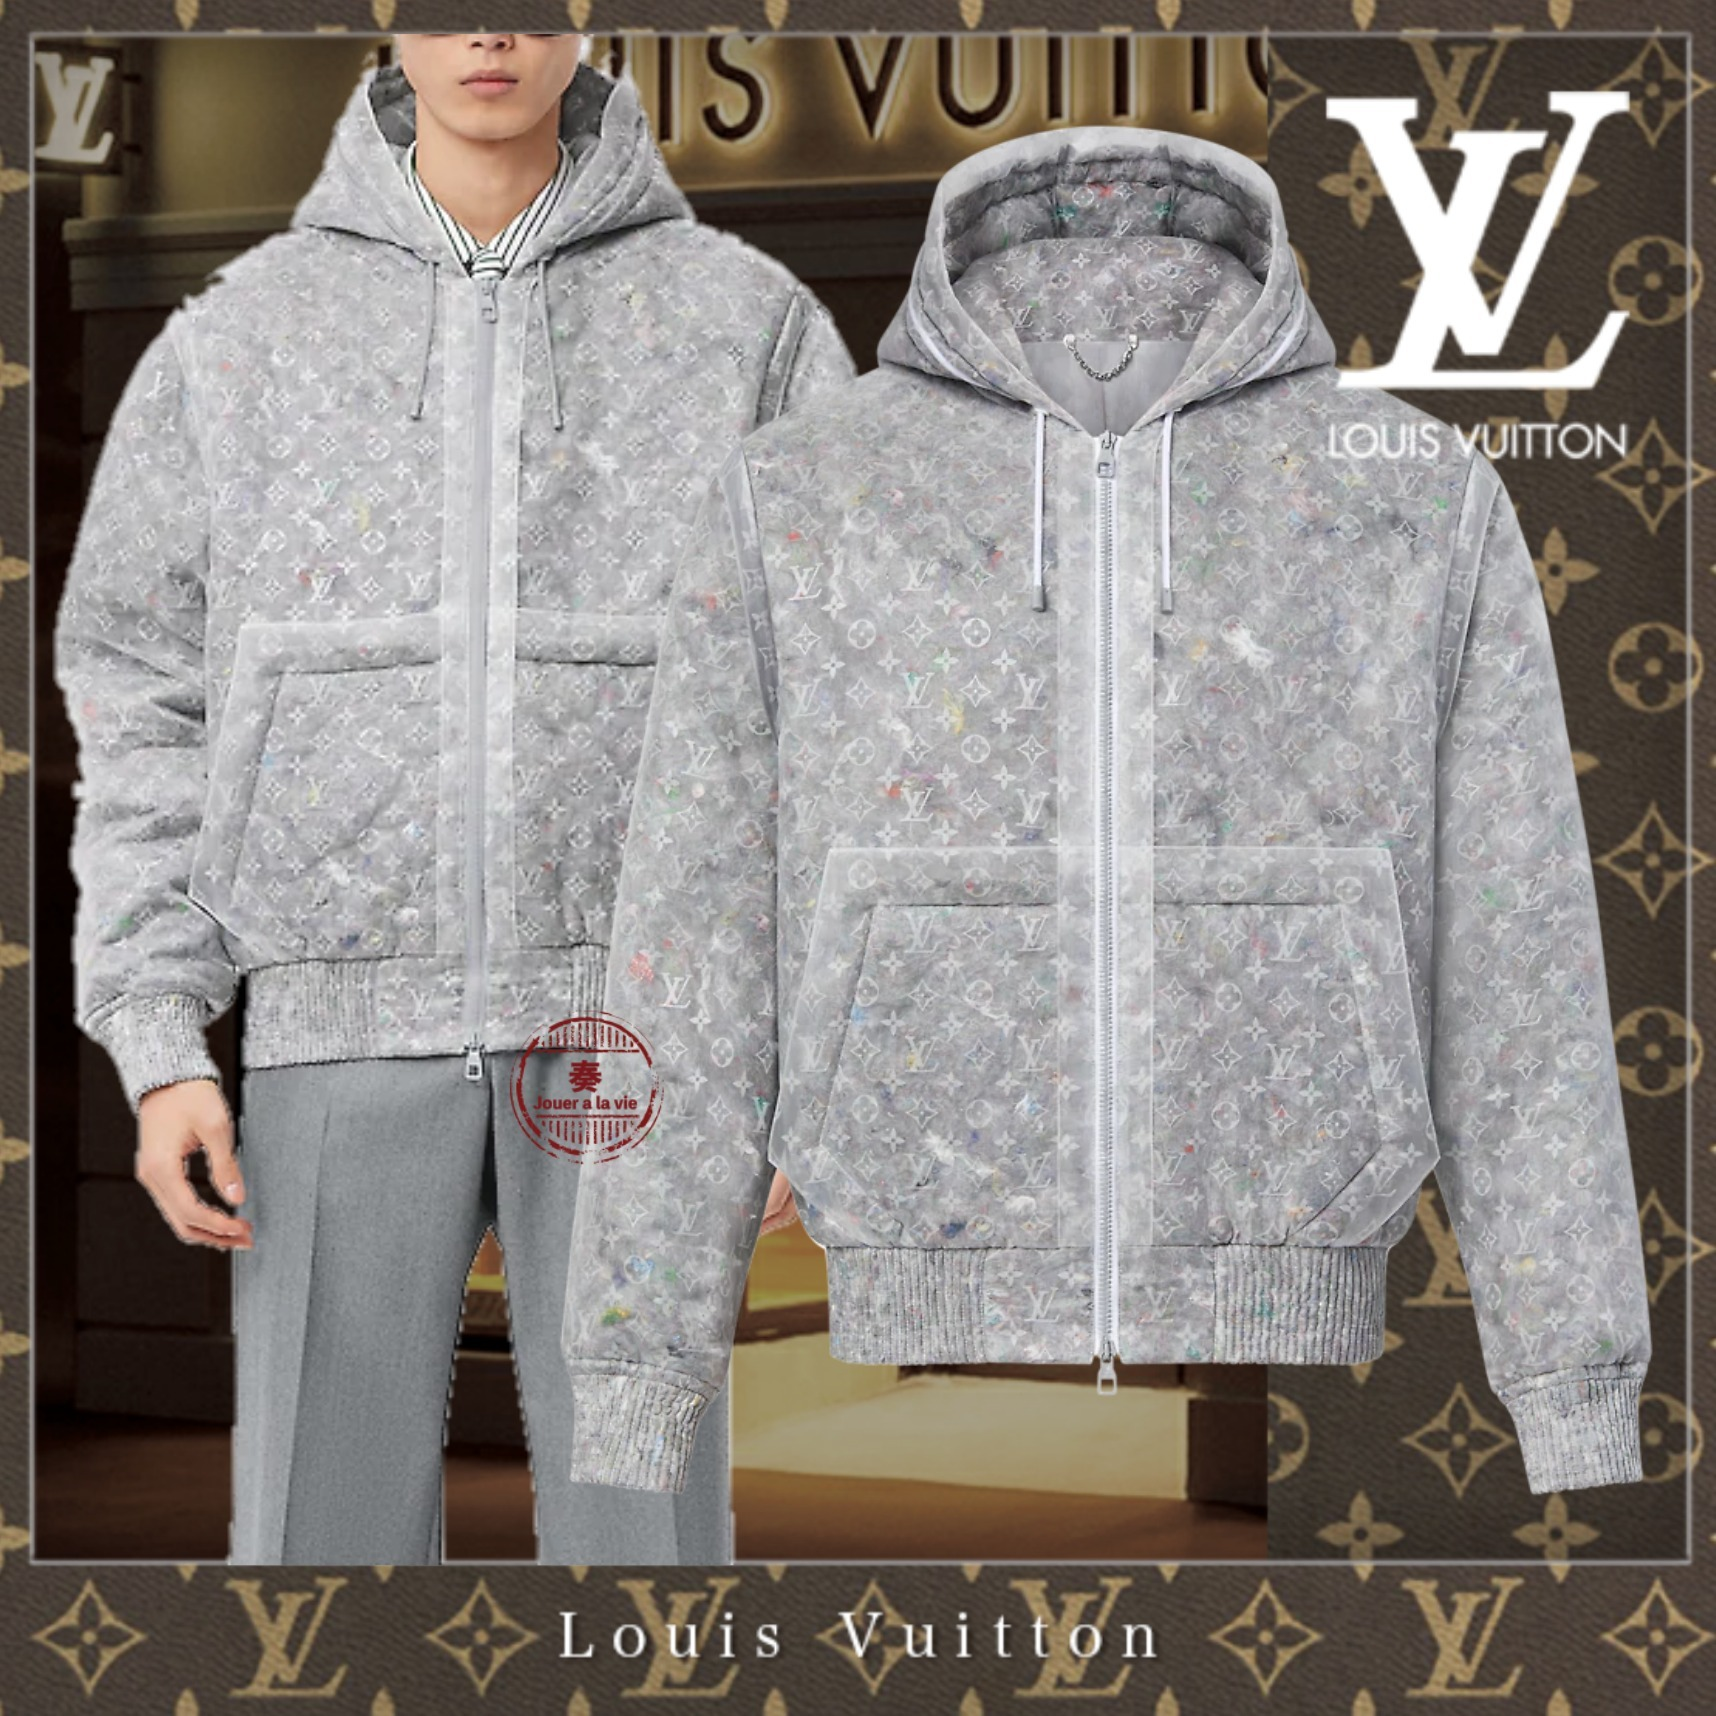 21FW Louis Vuitton 直営 モノグラムオーガンザパデッドブルゾン (Louis Vuitton/ブルゾン) 1A98AE  1A98AF   1A98AG